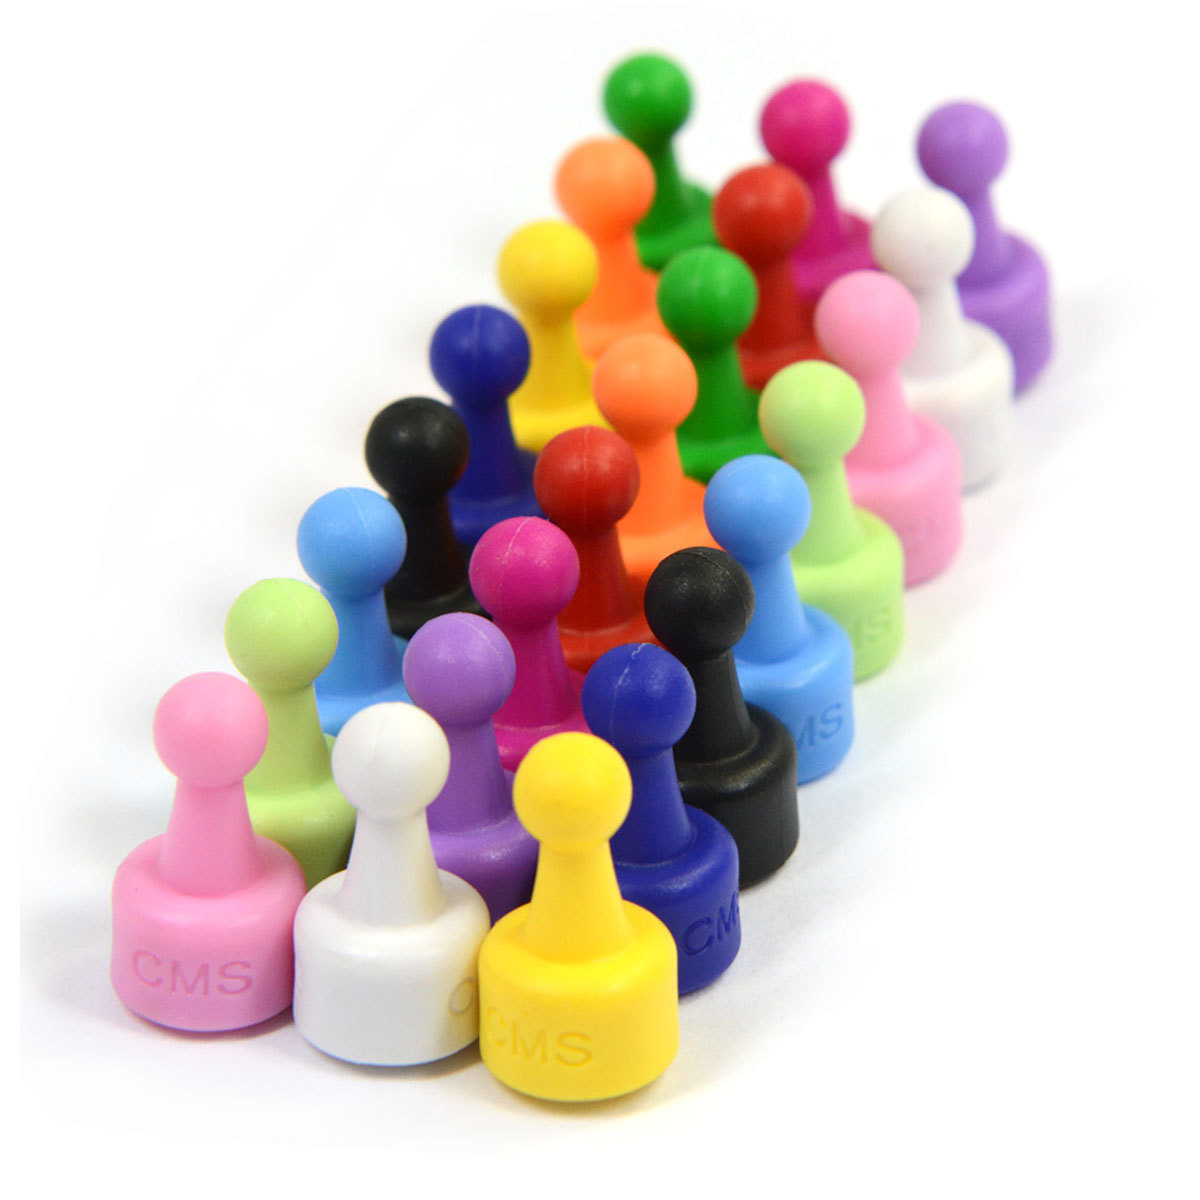 24 Ct. NeoPin® Assorted Color Magnetic Push pins - Super Strong Neodymium Magnets. Great for Magnetic Whiteboards, Refrigerators, other Applications